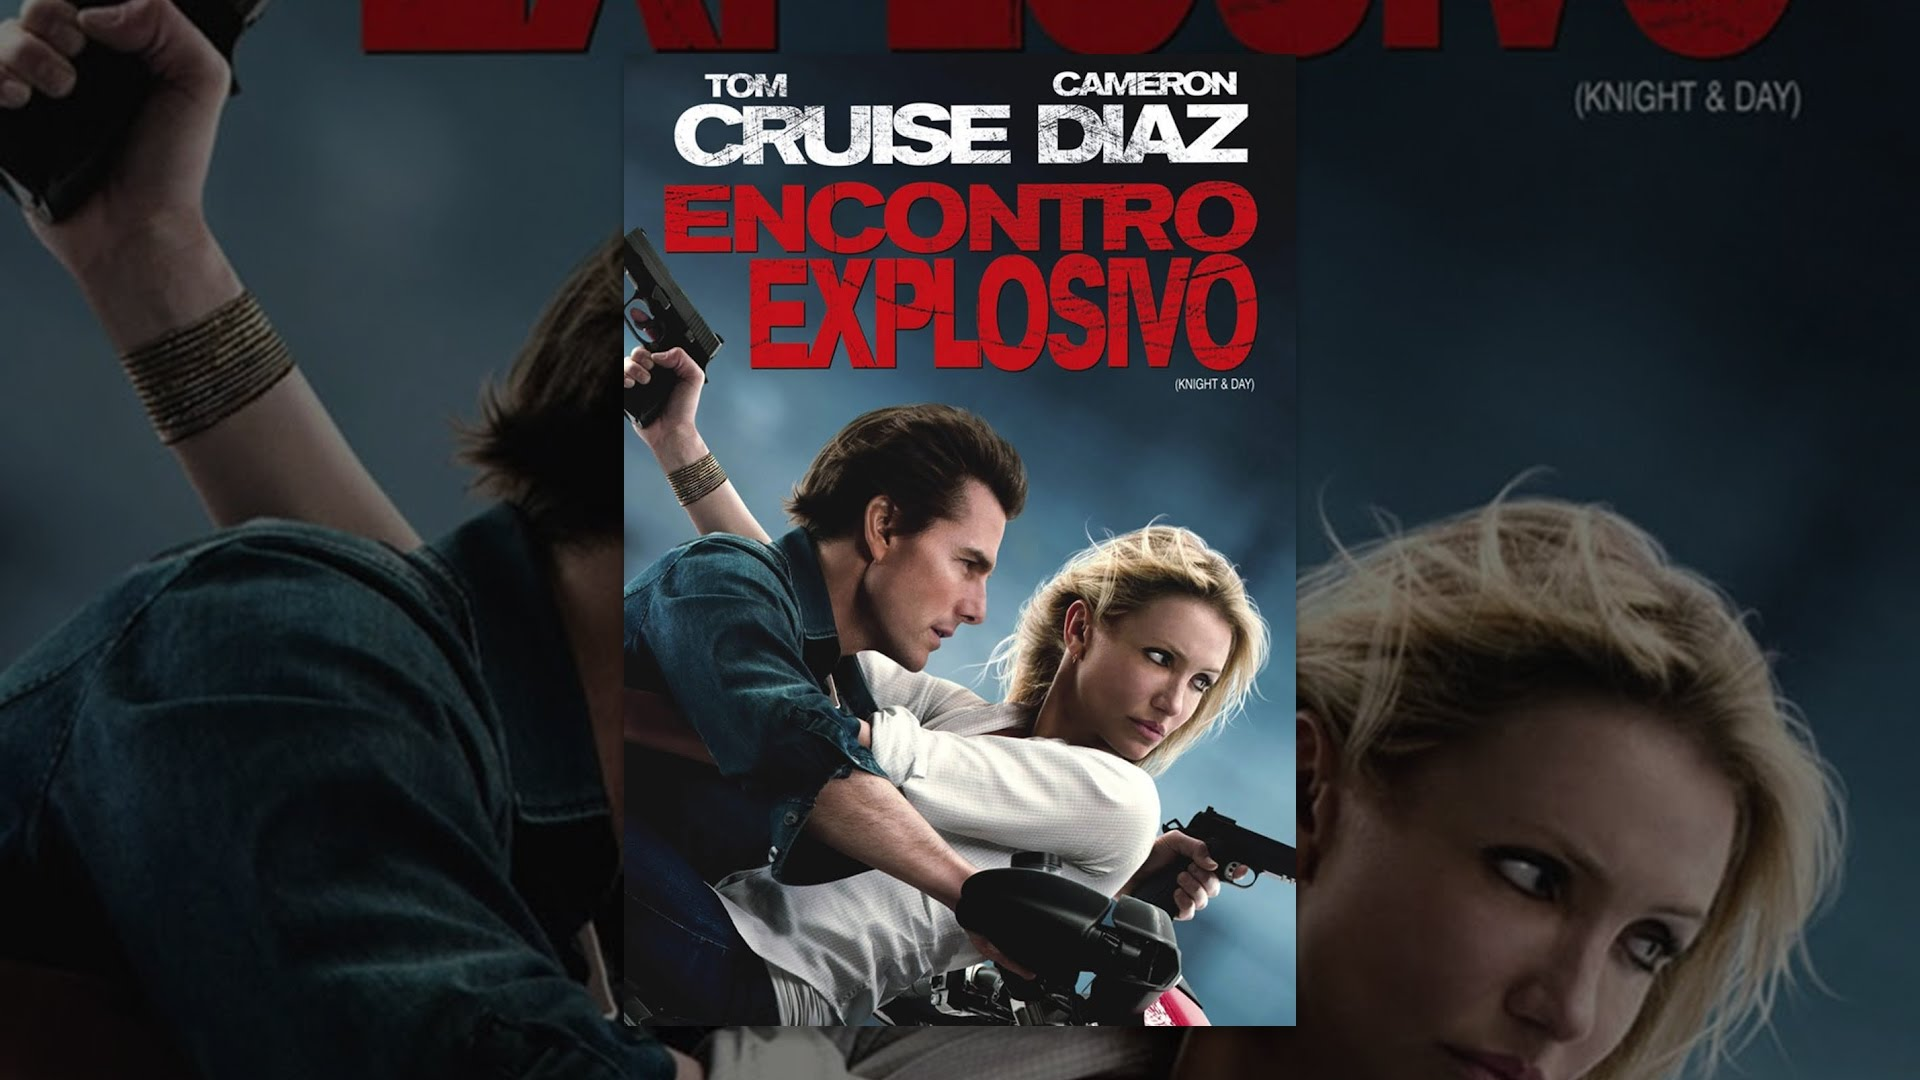 EXPLOSIVO DOWNLOAD DUBLADO GRATUITO FILME ENCONTRO